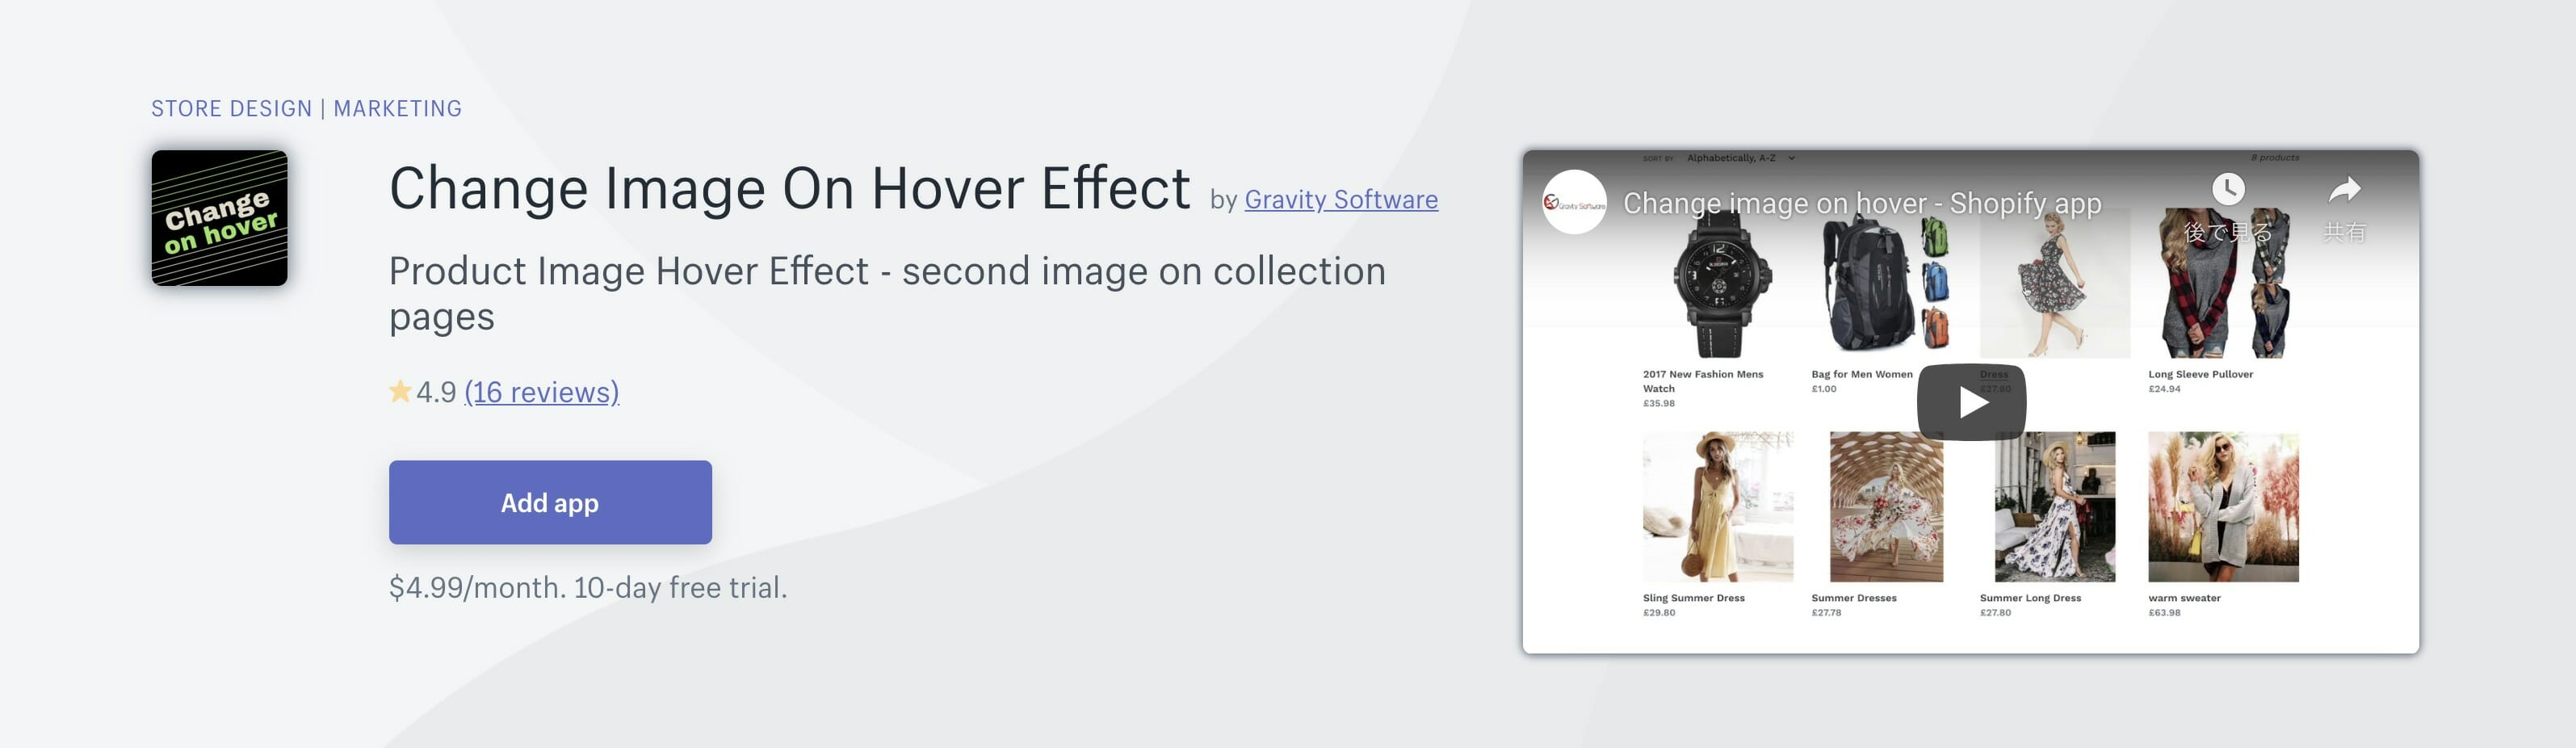 Change_Image_On_Hover_Effect